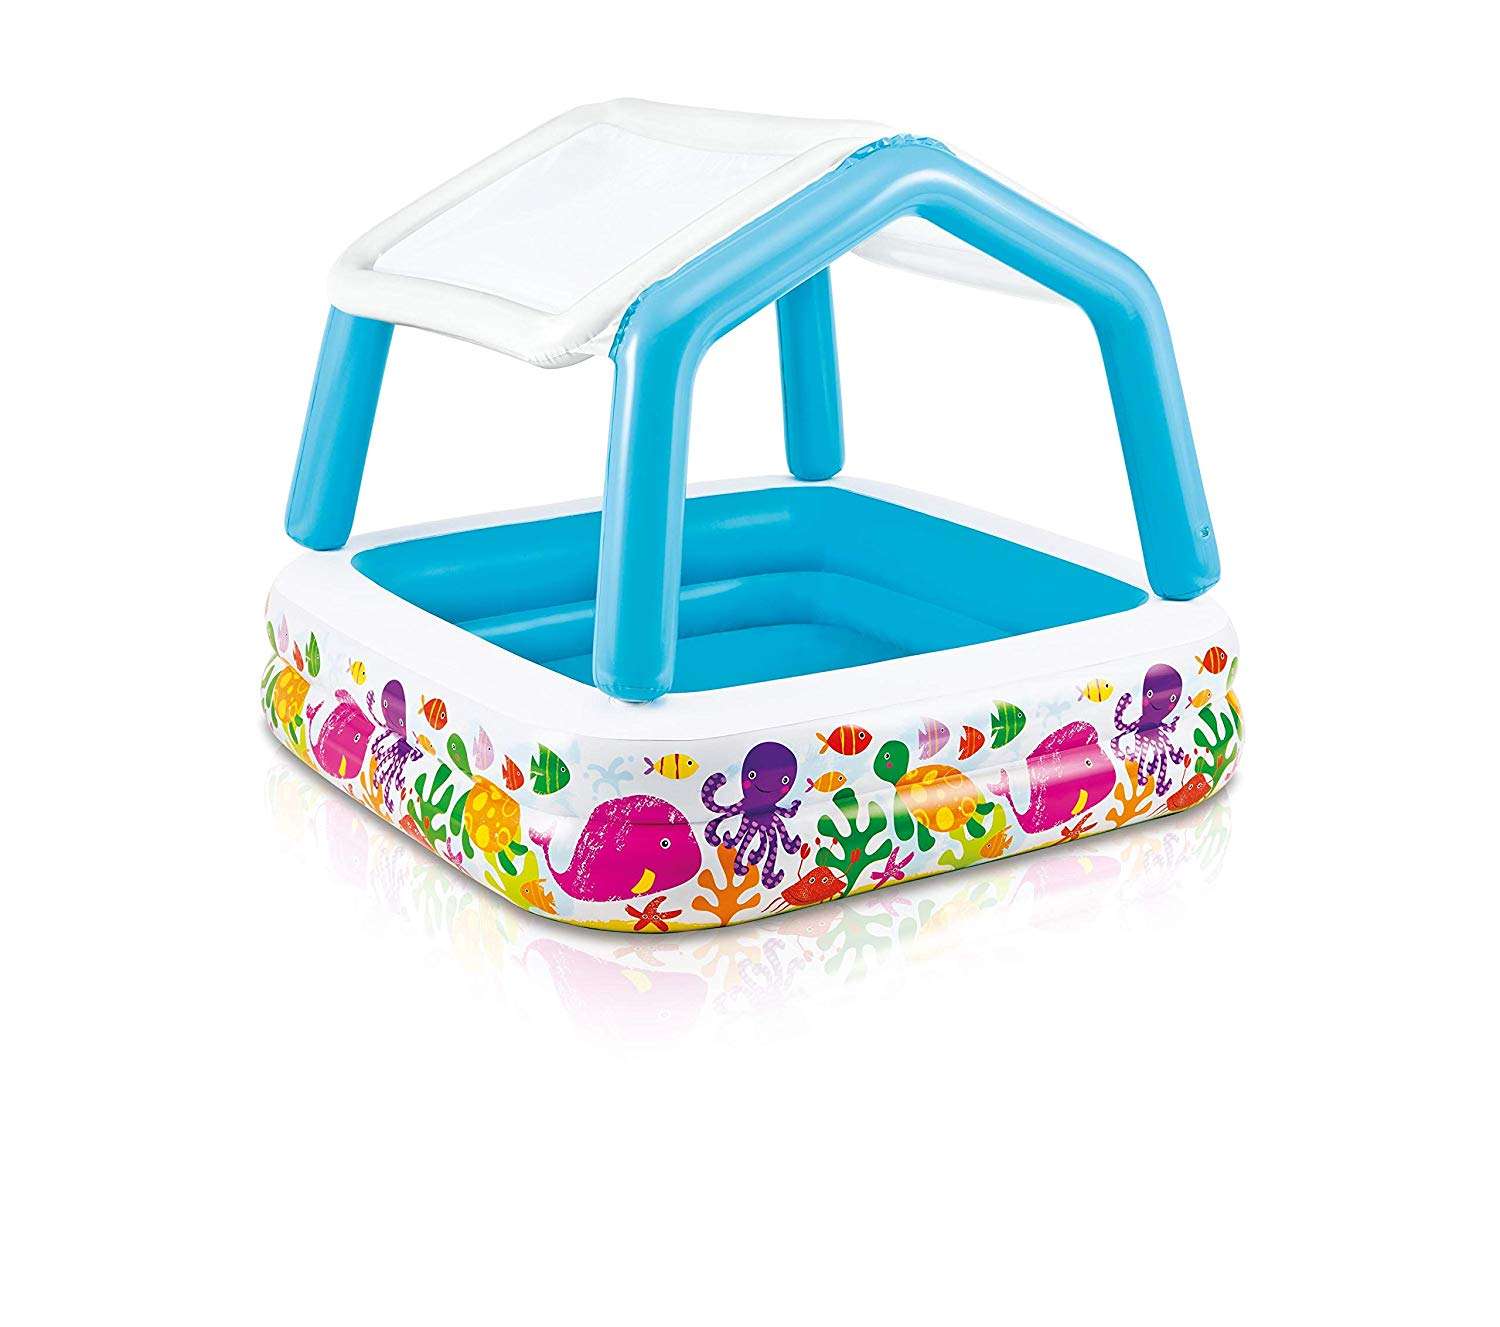 Intex Pool amazon